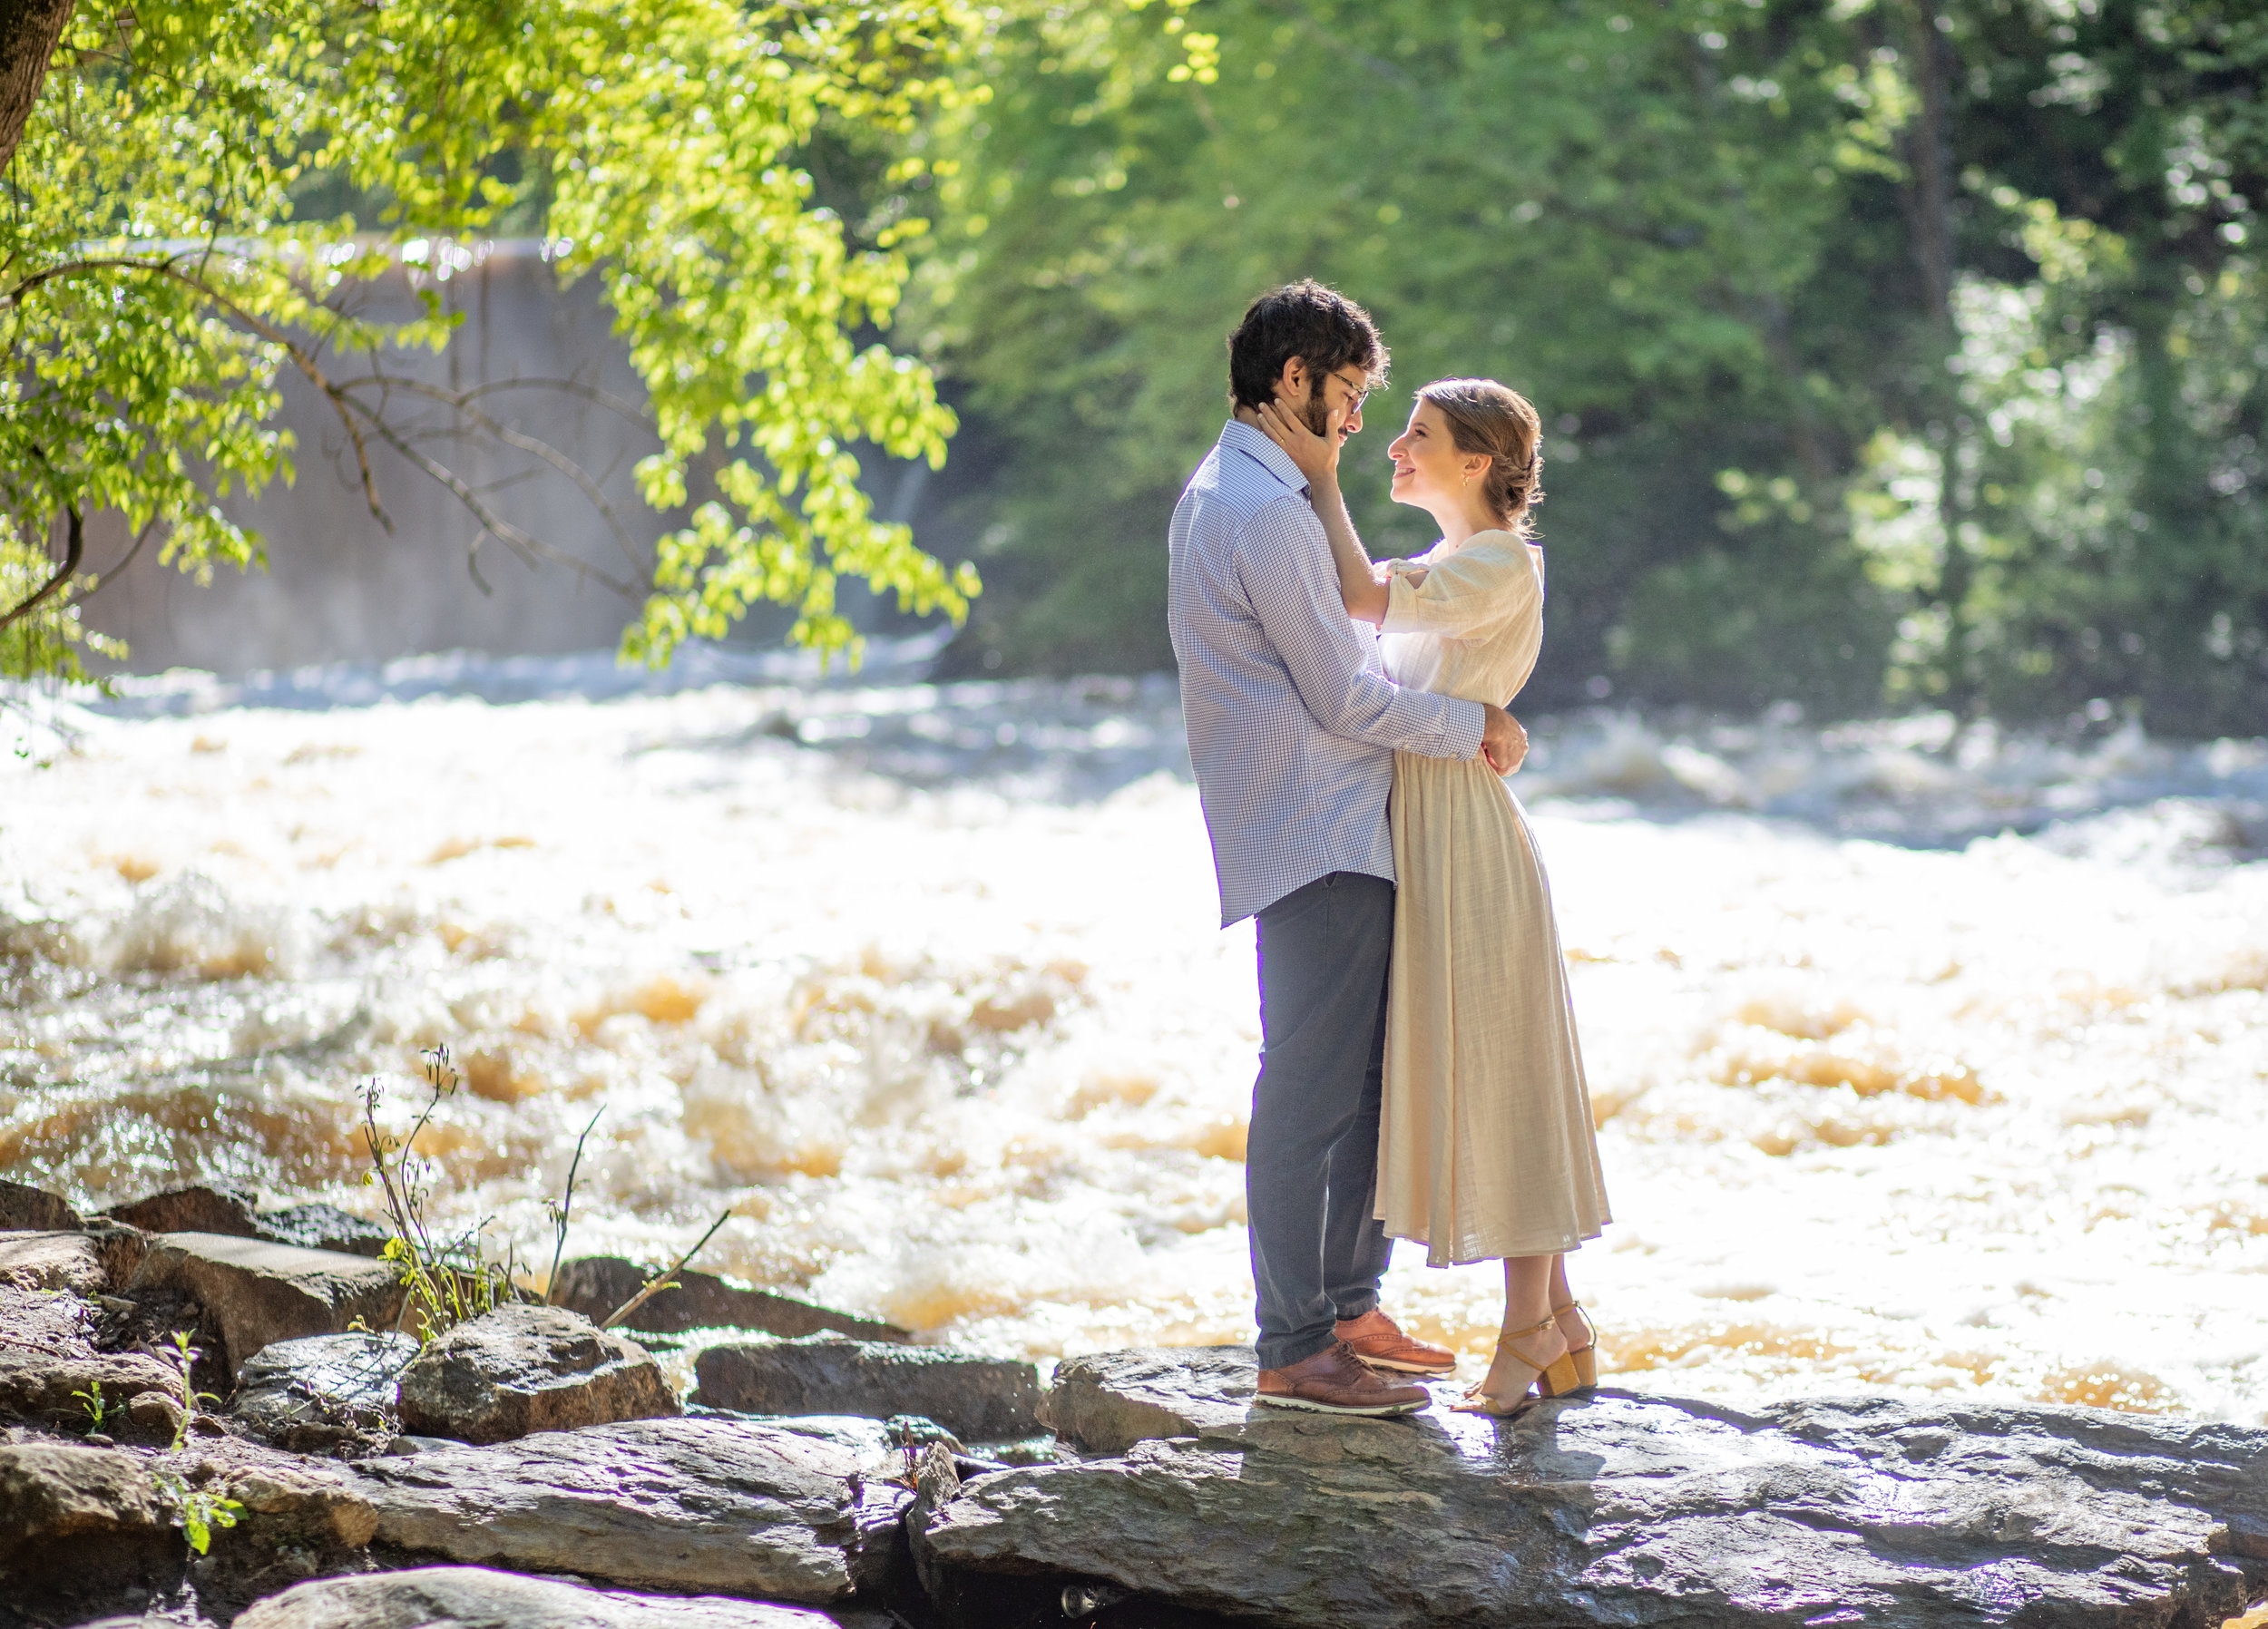 Engagement Photos by the Atlanta Wedding Photographers at AtlantaArtisticWeddings